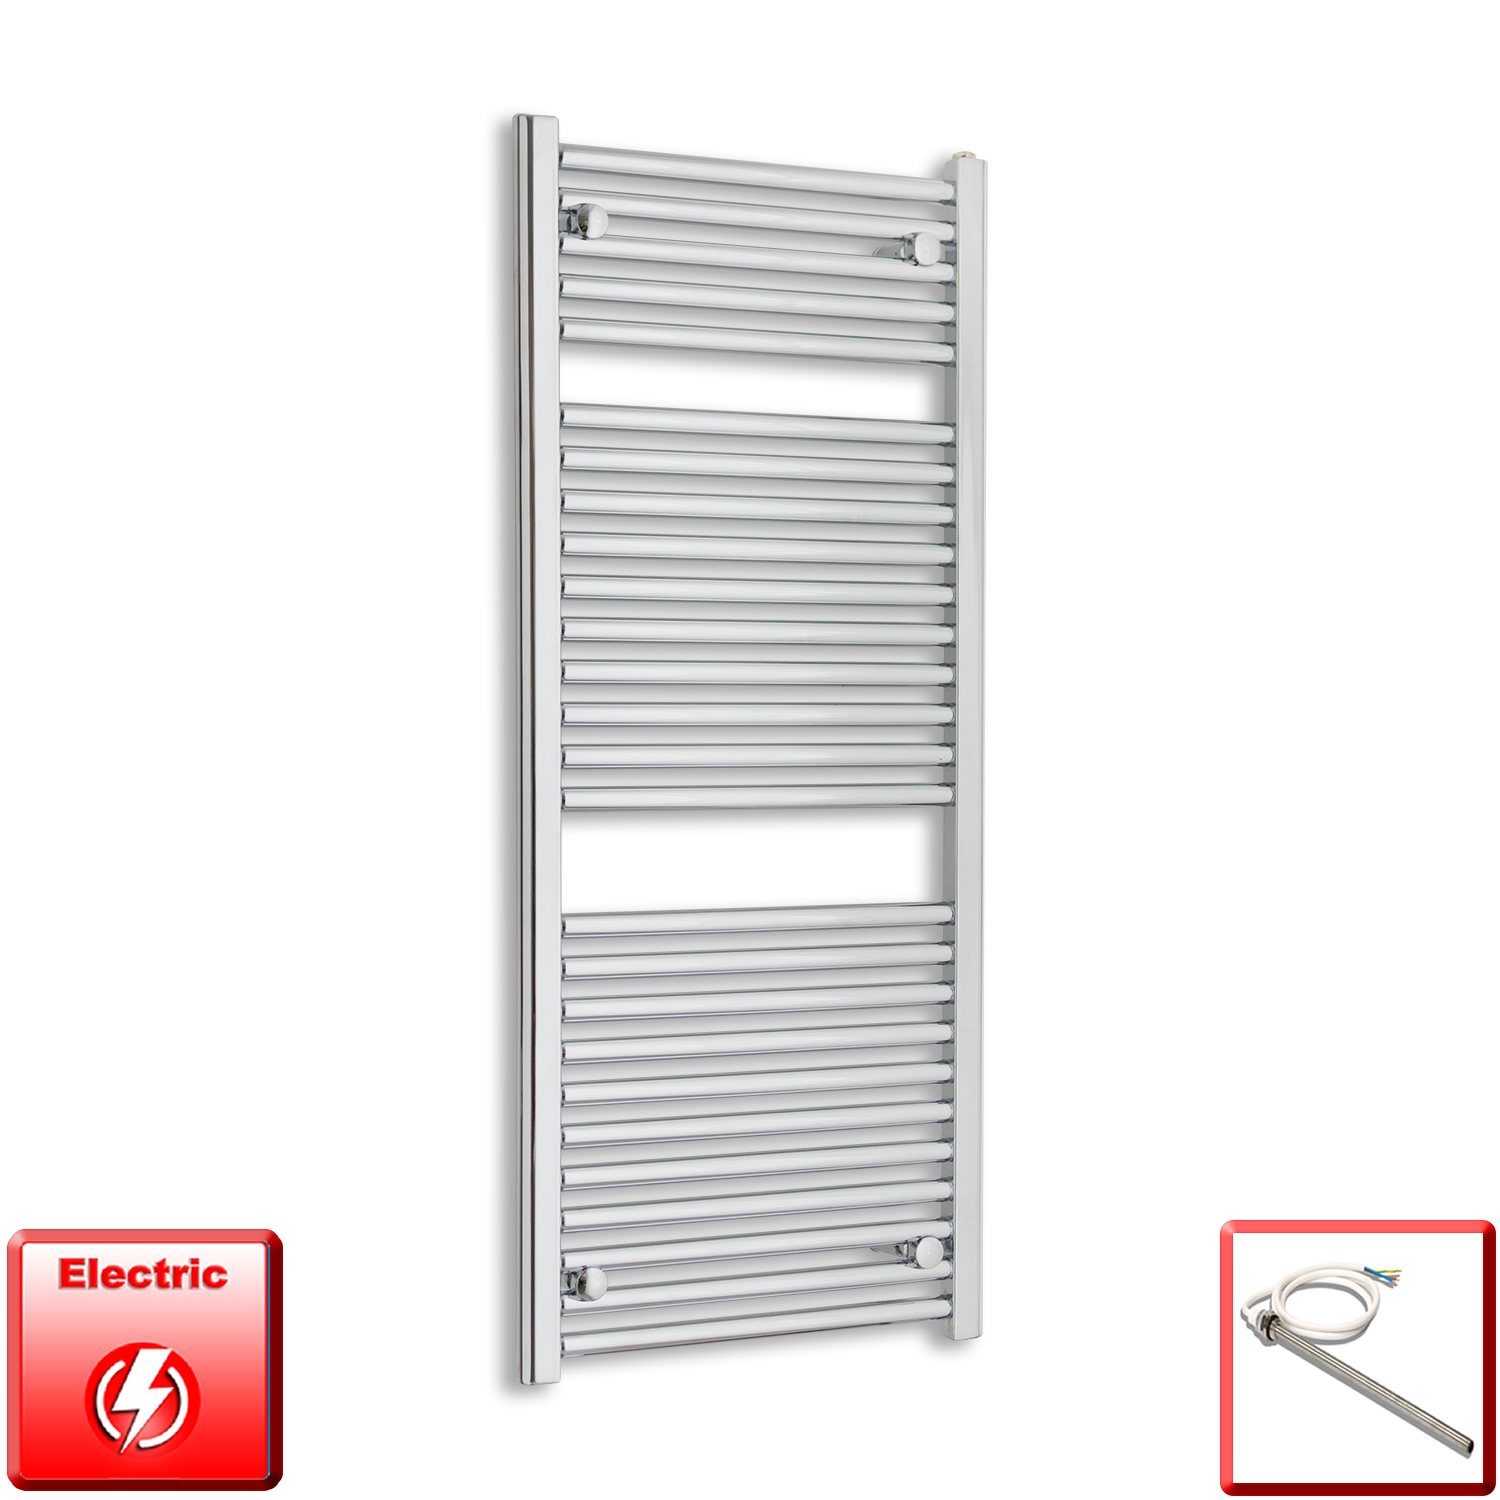 1185 mm High 500 mm Wide Heated Flat Towel Rail Radiator Chrome